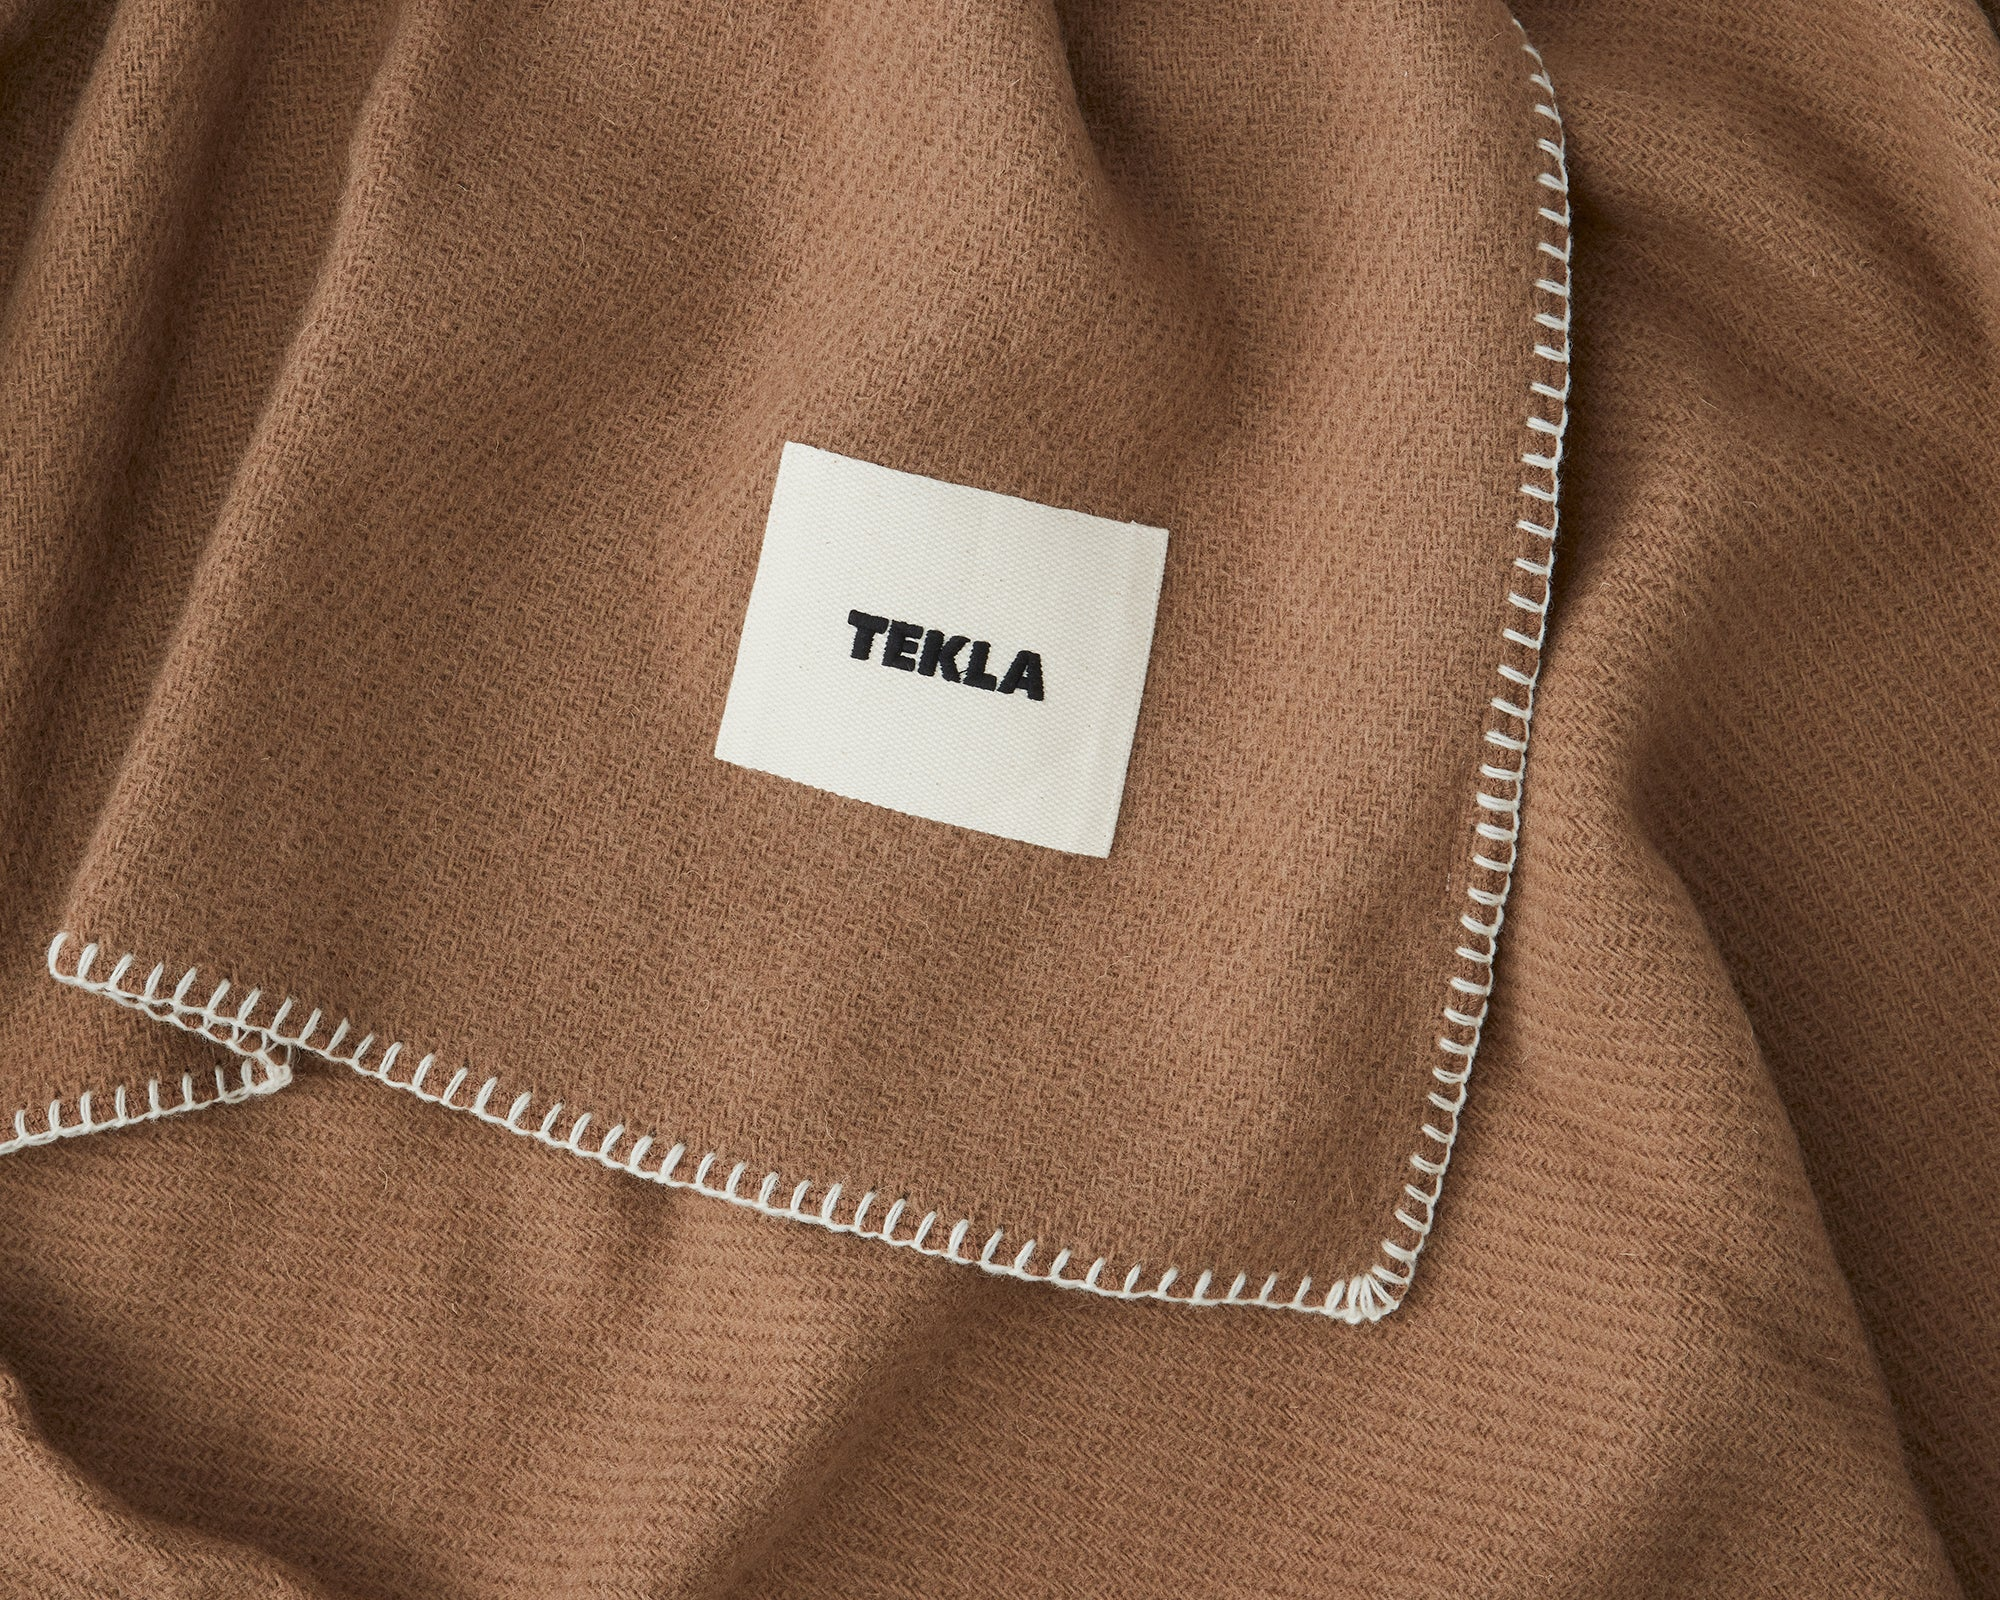 Telka New Wool Blanket - Hazel Brown